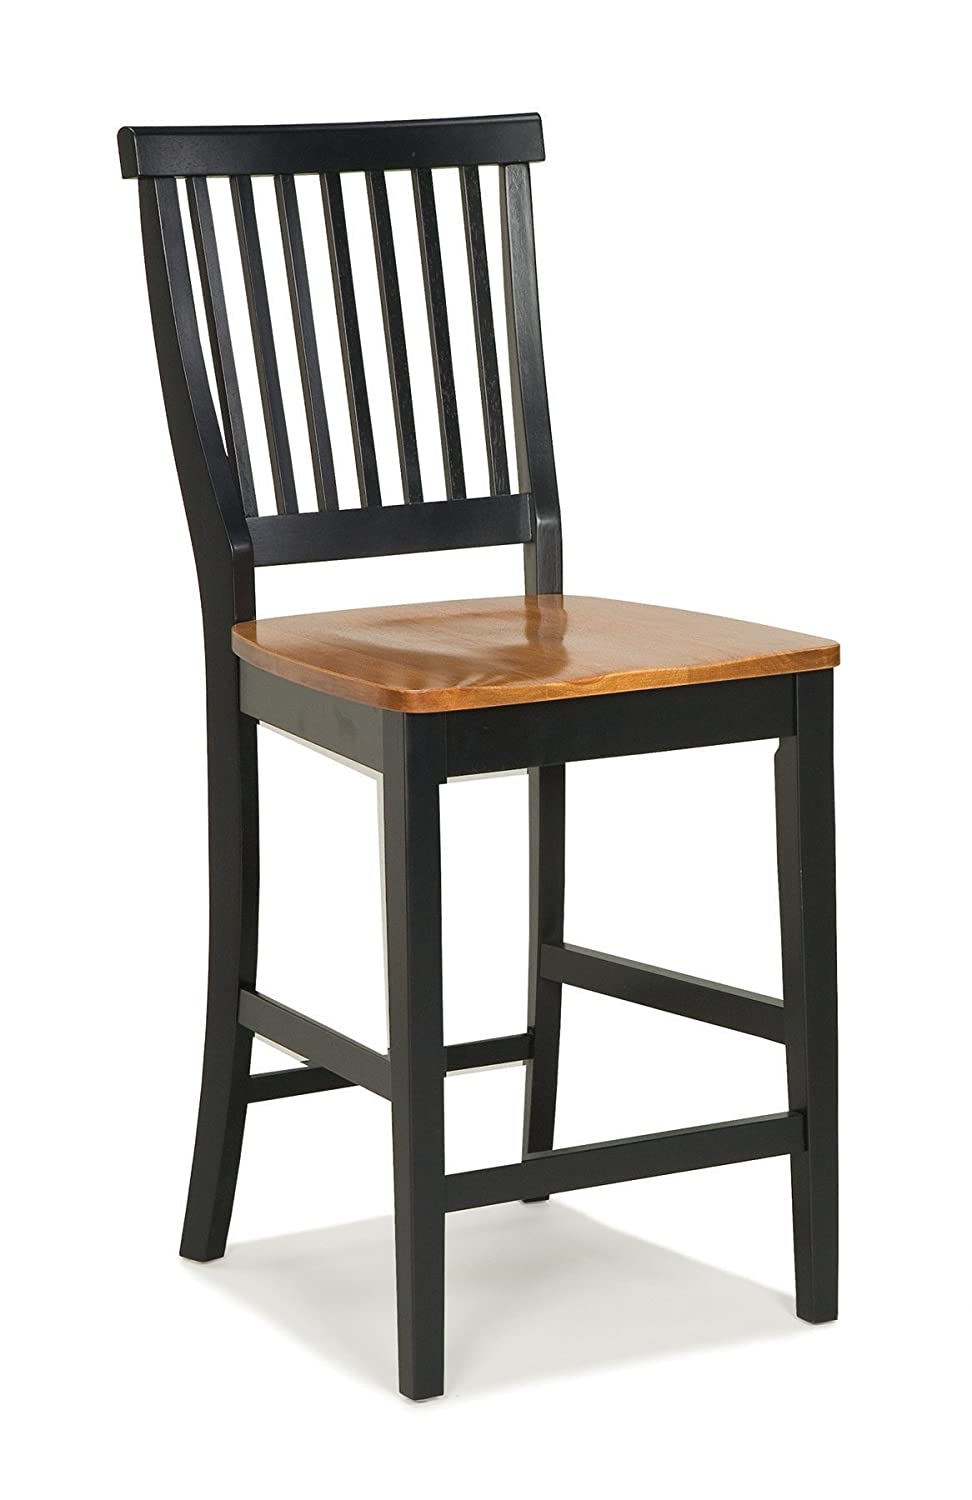 Americana Black Distressed Oak bar Stool by Home Styles